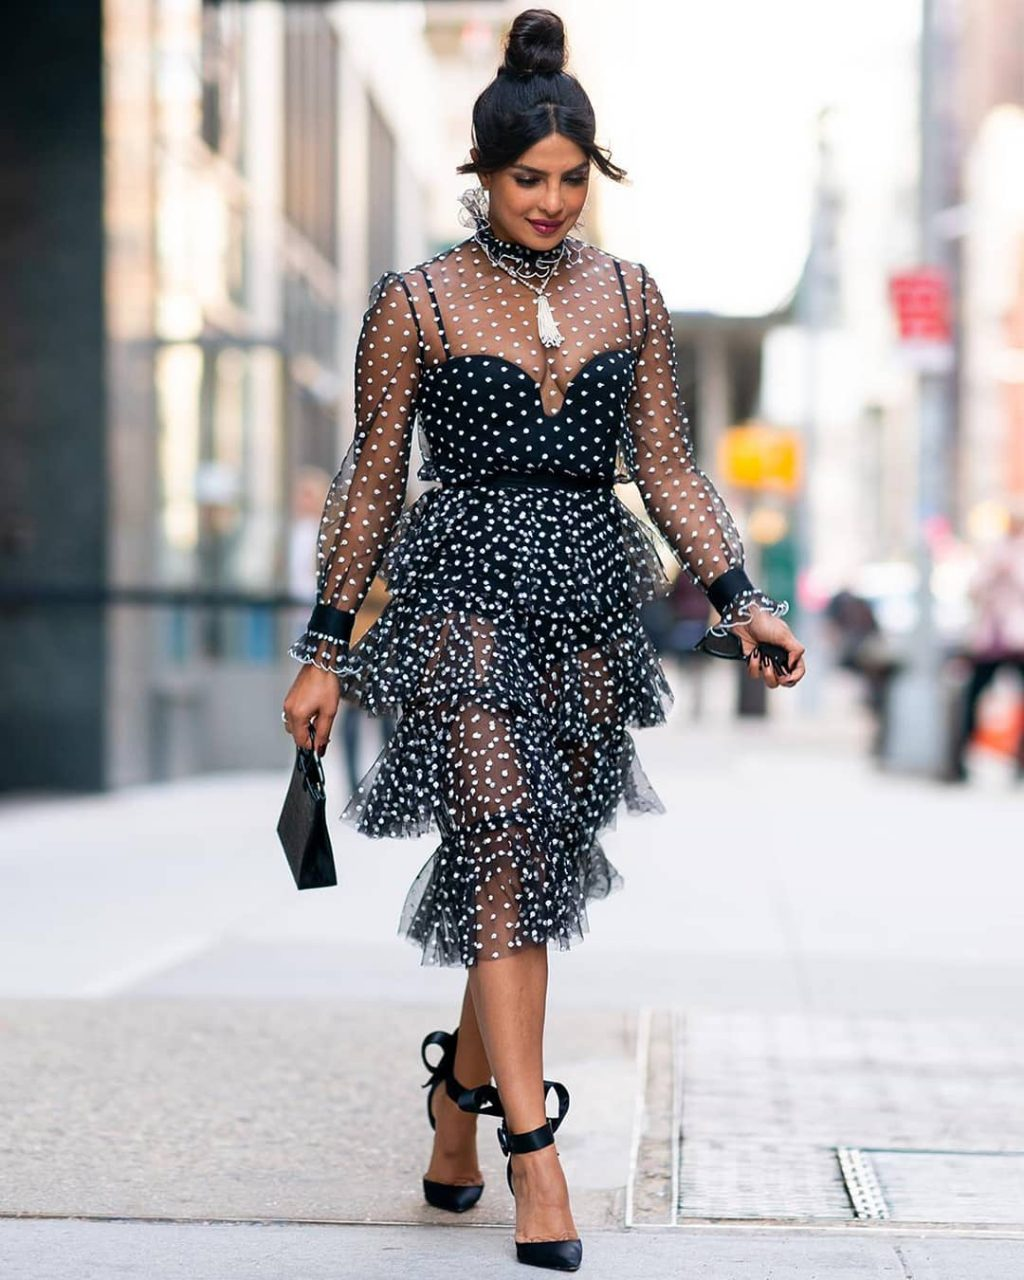 Priyanka Chopra Wore How Many Outfits in One Day?